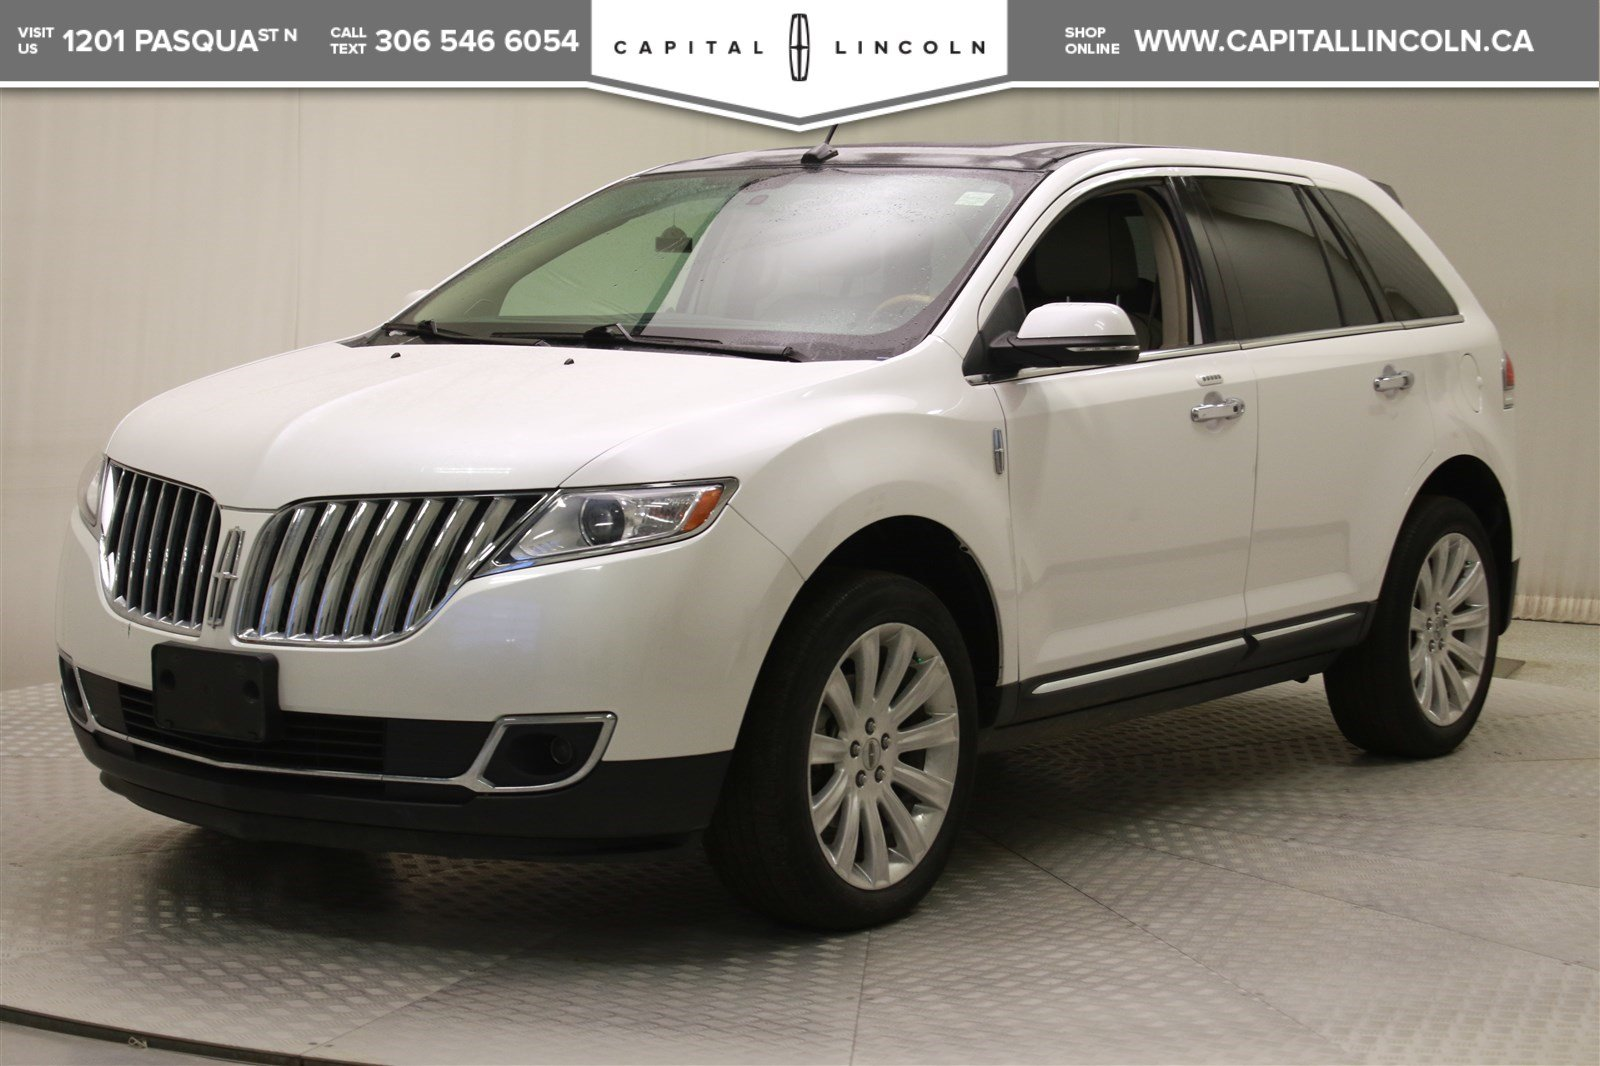 Certified Pre-Owned 2014 Lincoln MKX AWD *Navigation-Heated Seats-Remote Start*